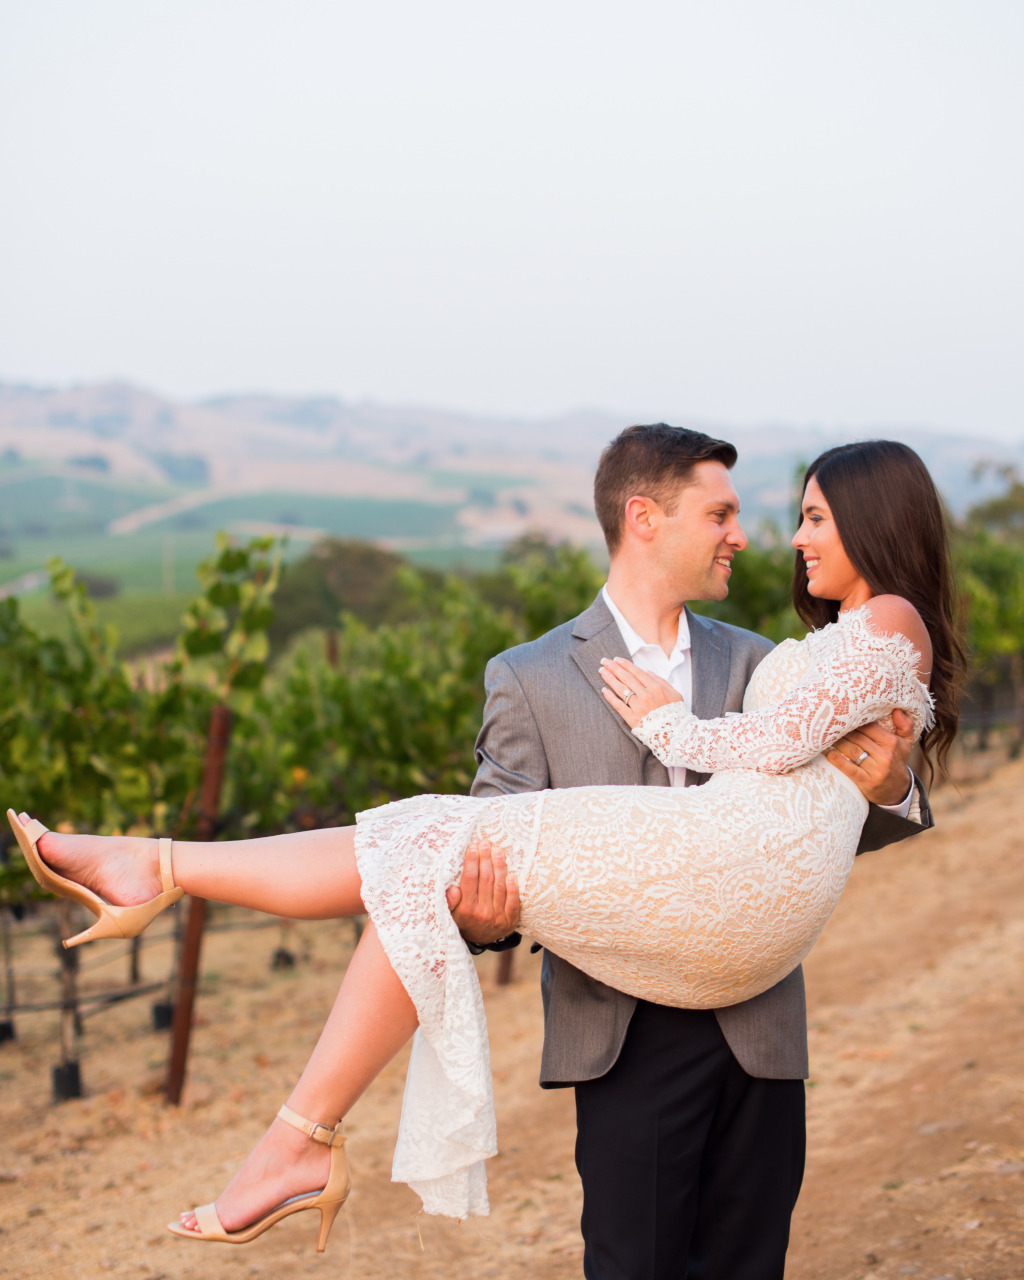 Napa is the perfect place for photos, whether it's your wedding, your engagement, or, like these two, your anniversary.